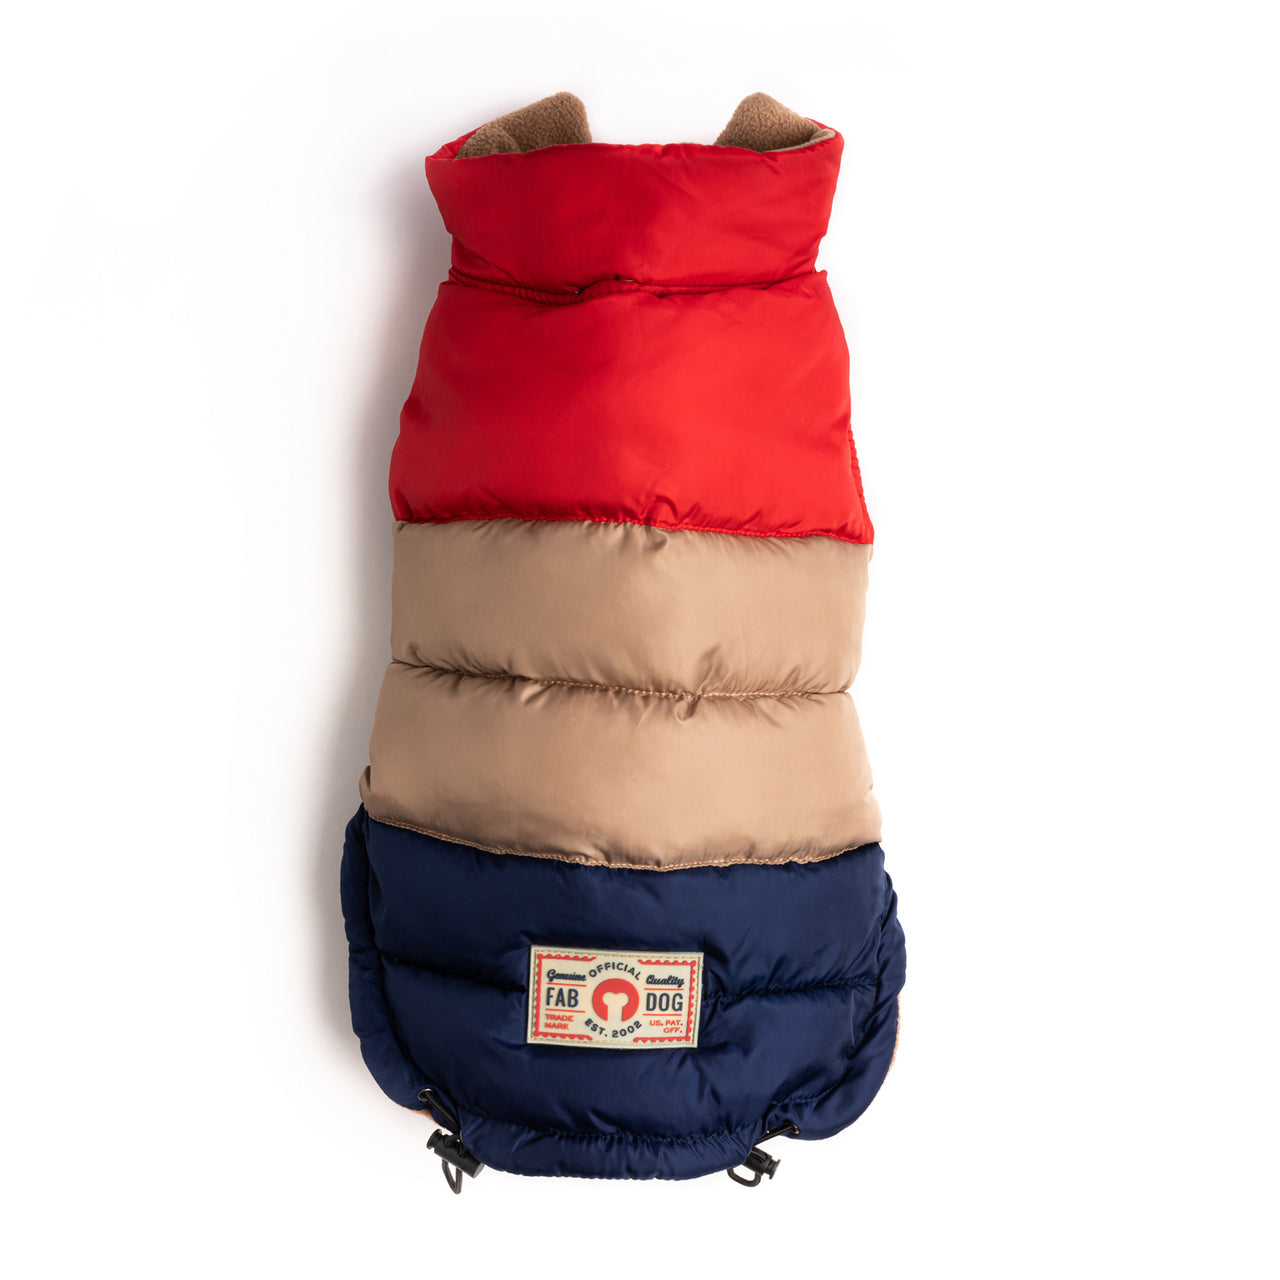 Red, Tan & Navy Color Block Puffer